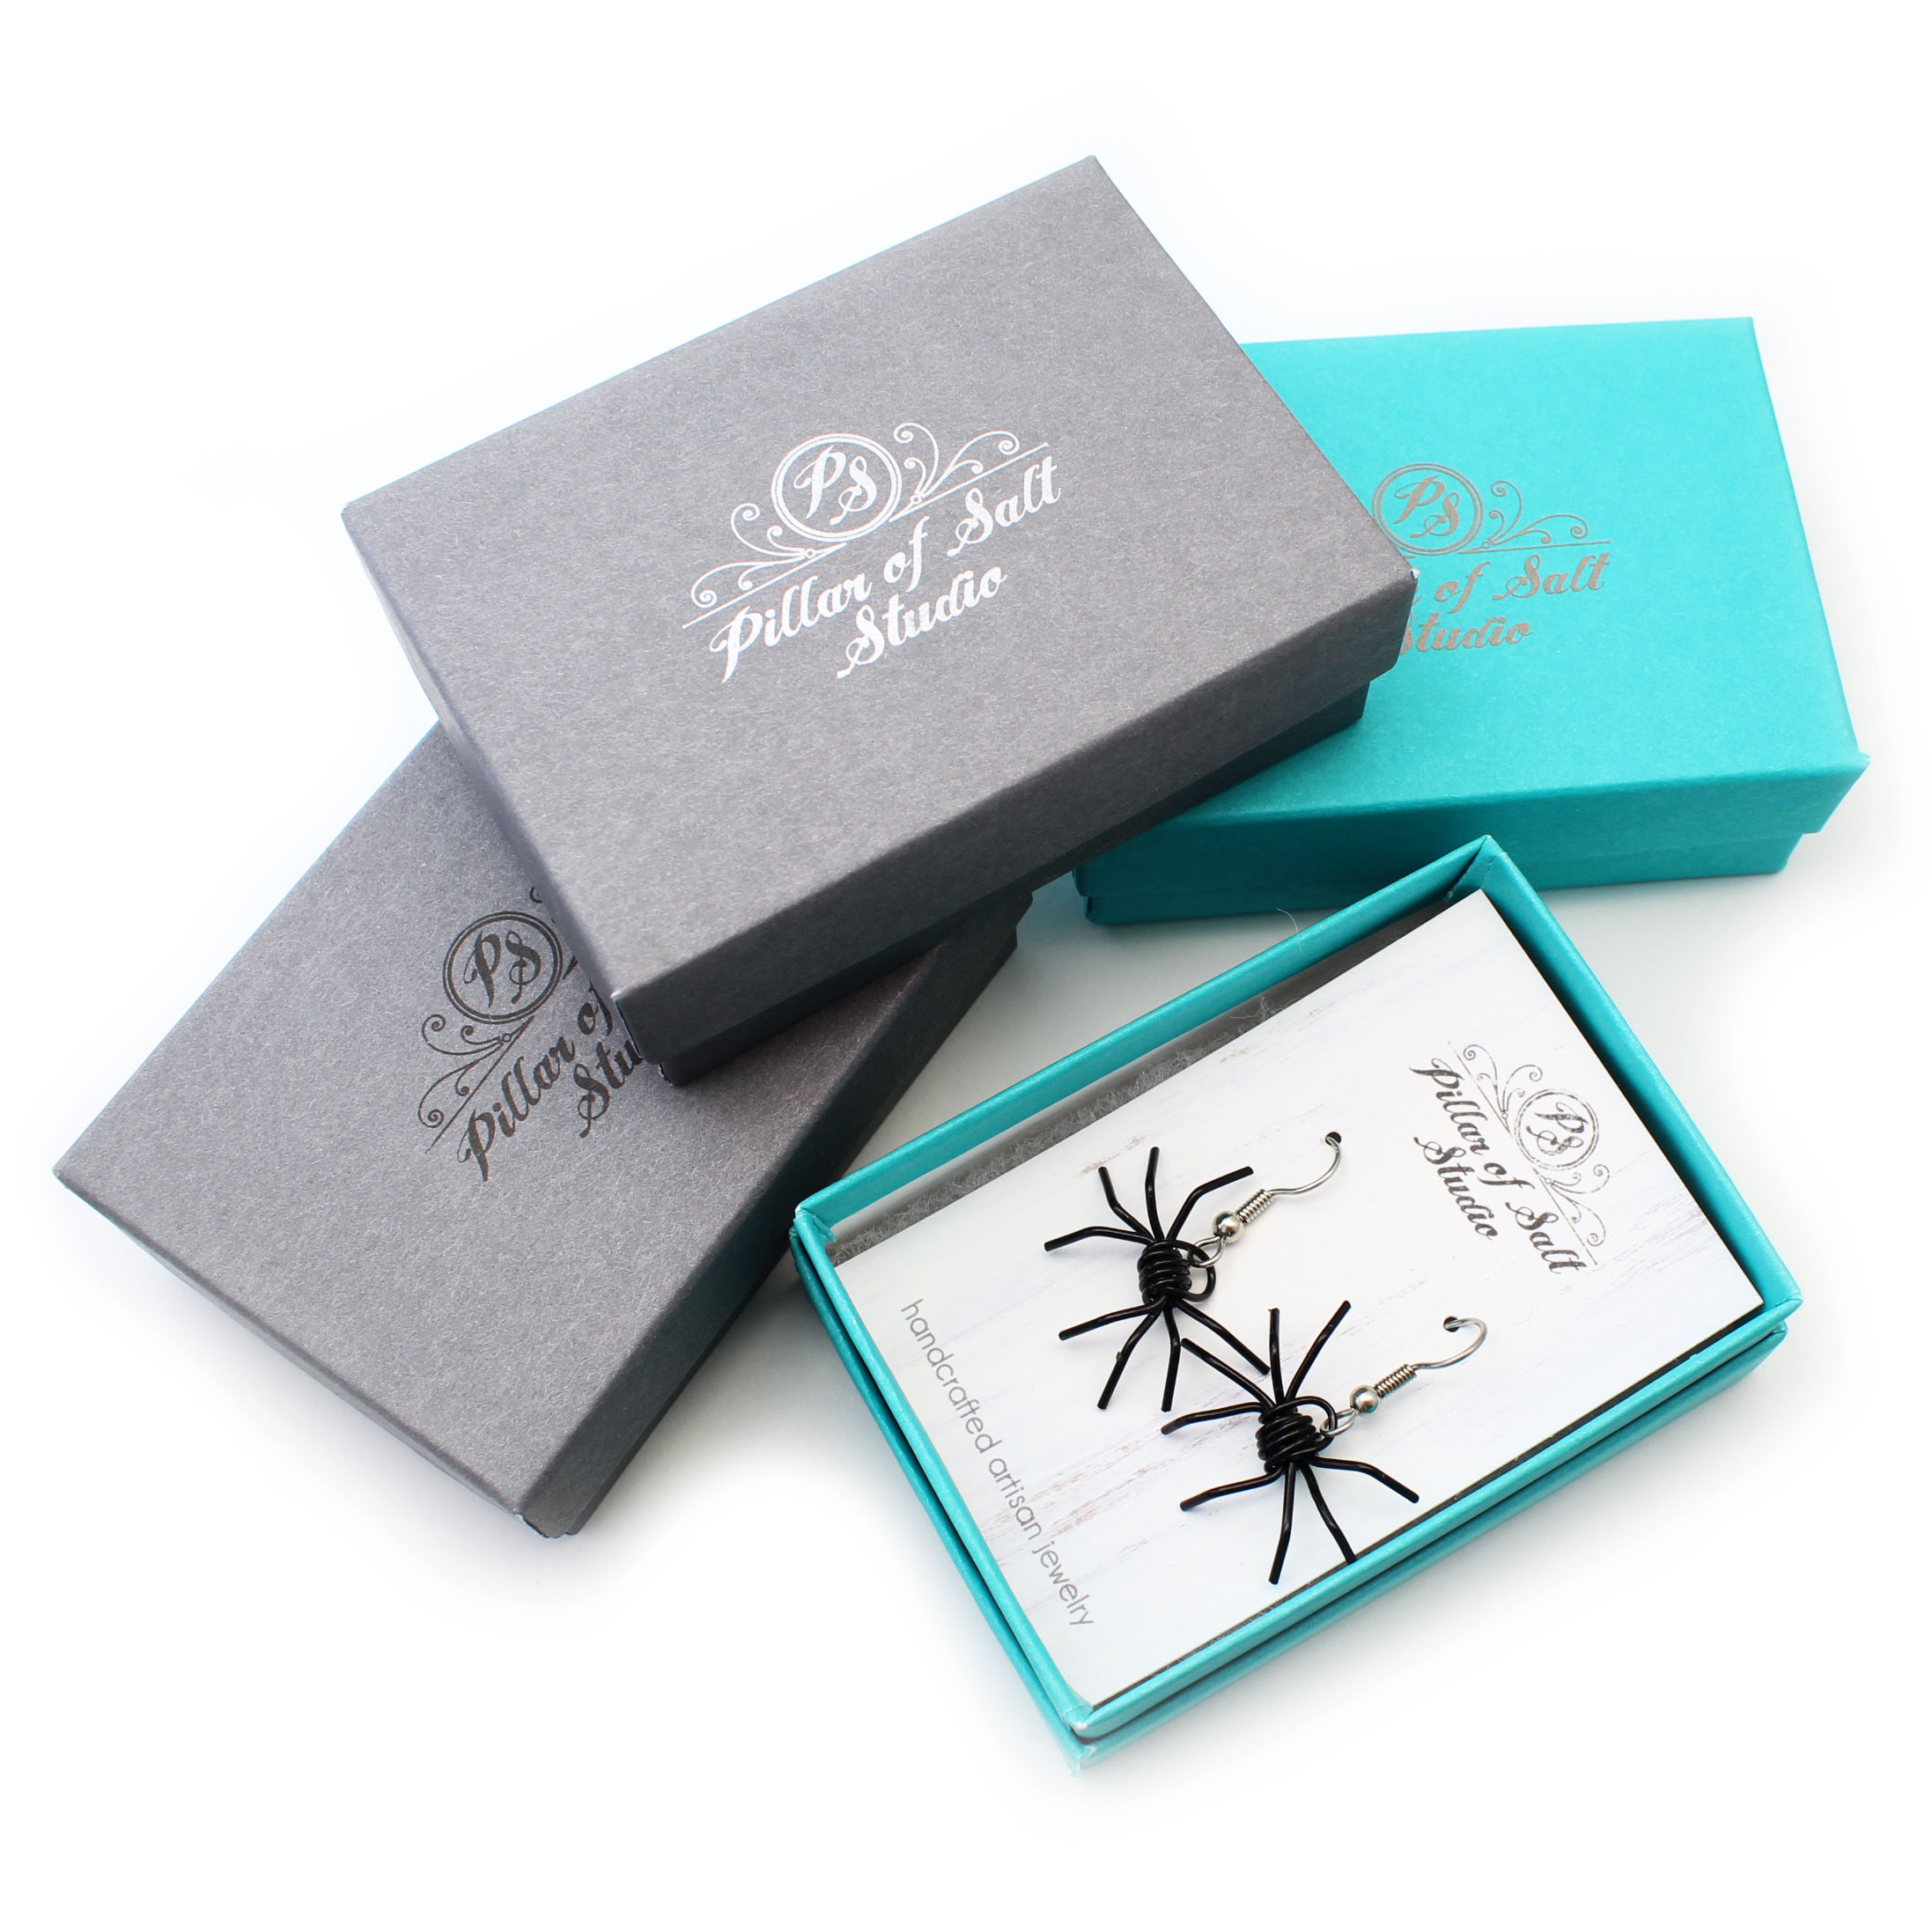 Your earrings come packaged in a small jewelry box. Gift wrapping is also available at checkout.